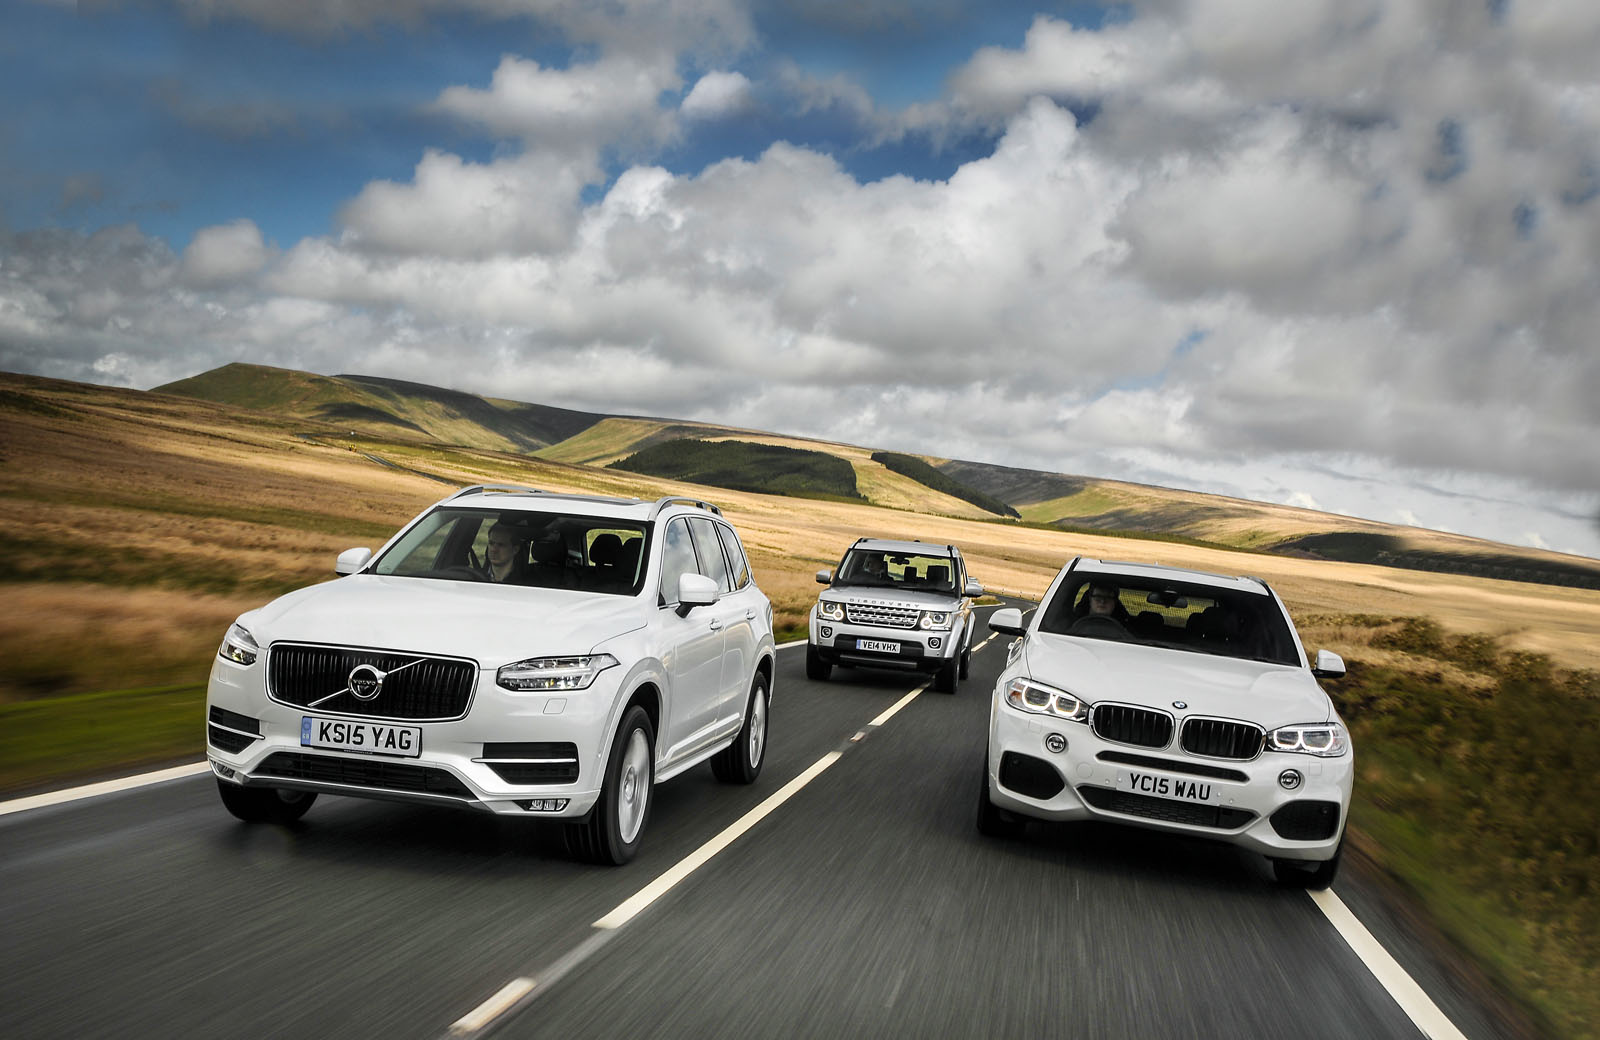 Coupe Series bmw x5 vs range rover sport Volvo XC90 versus BMW X5 and Land Rover Discovery - comparison ...